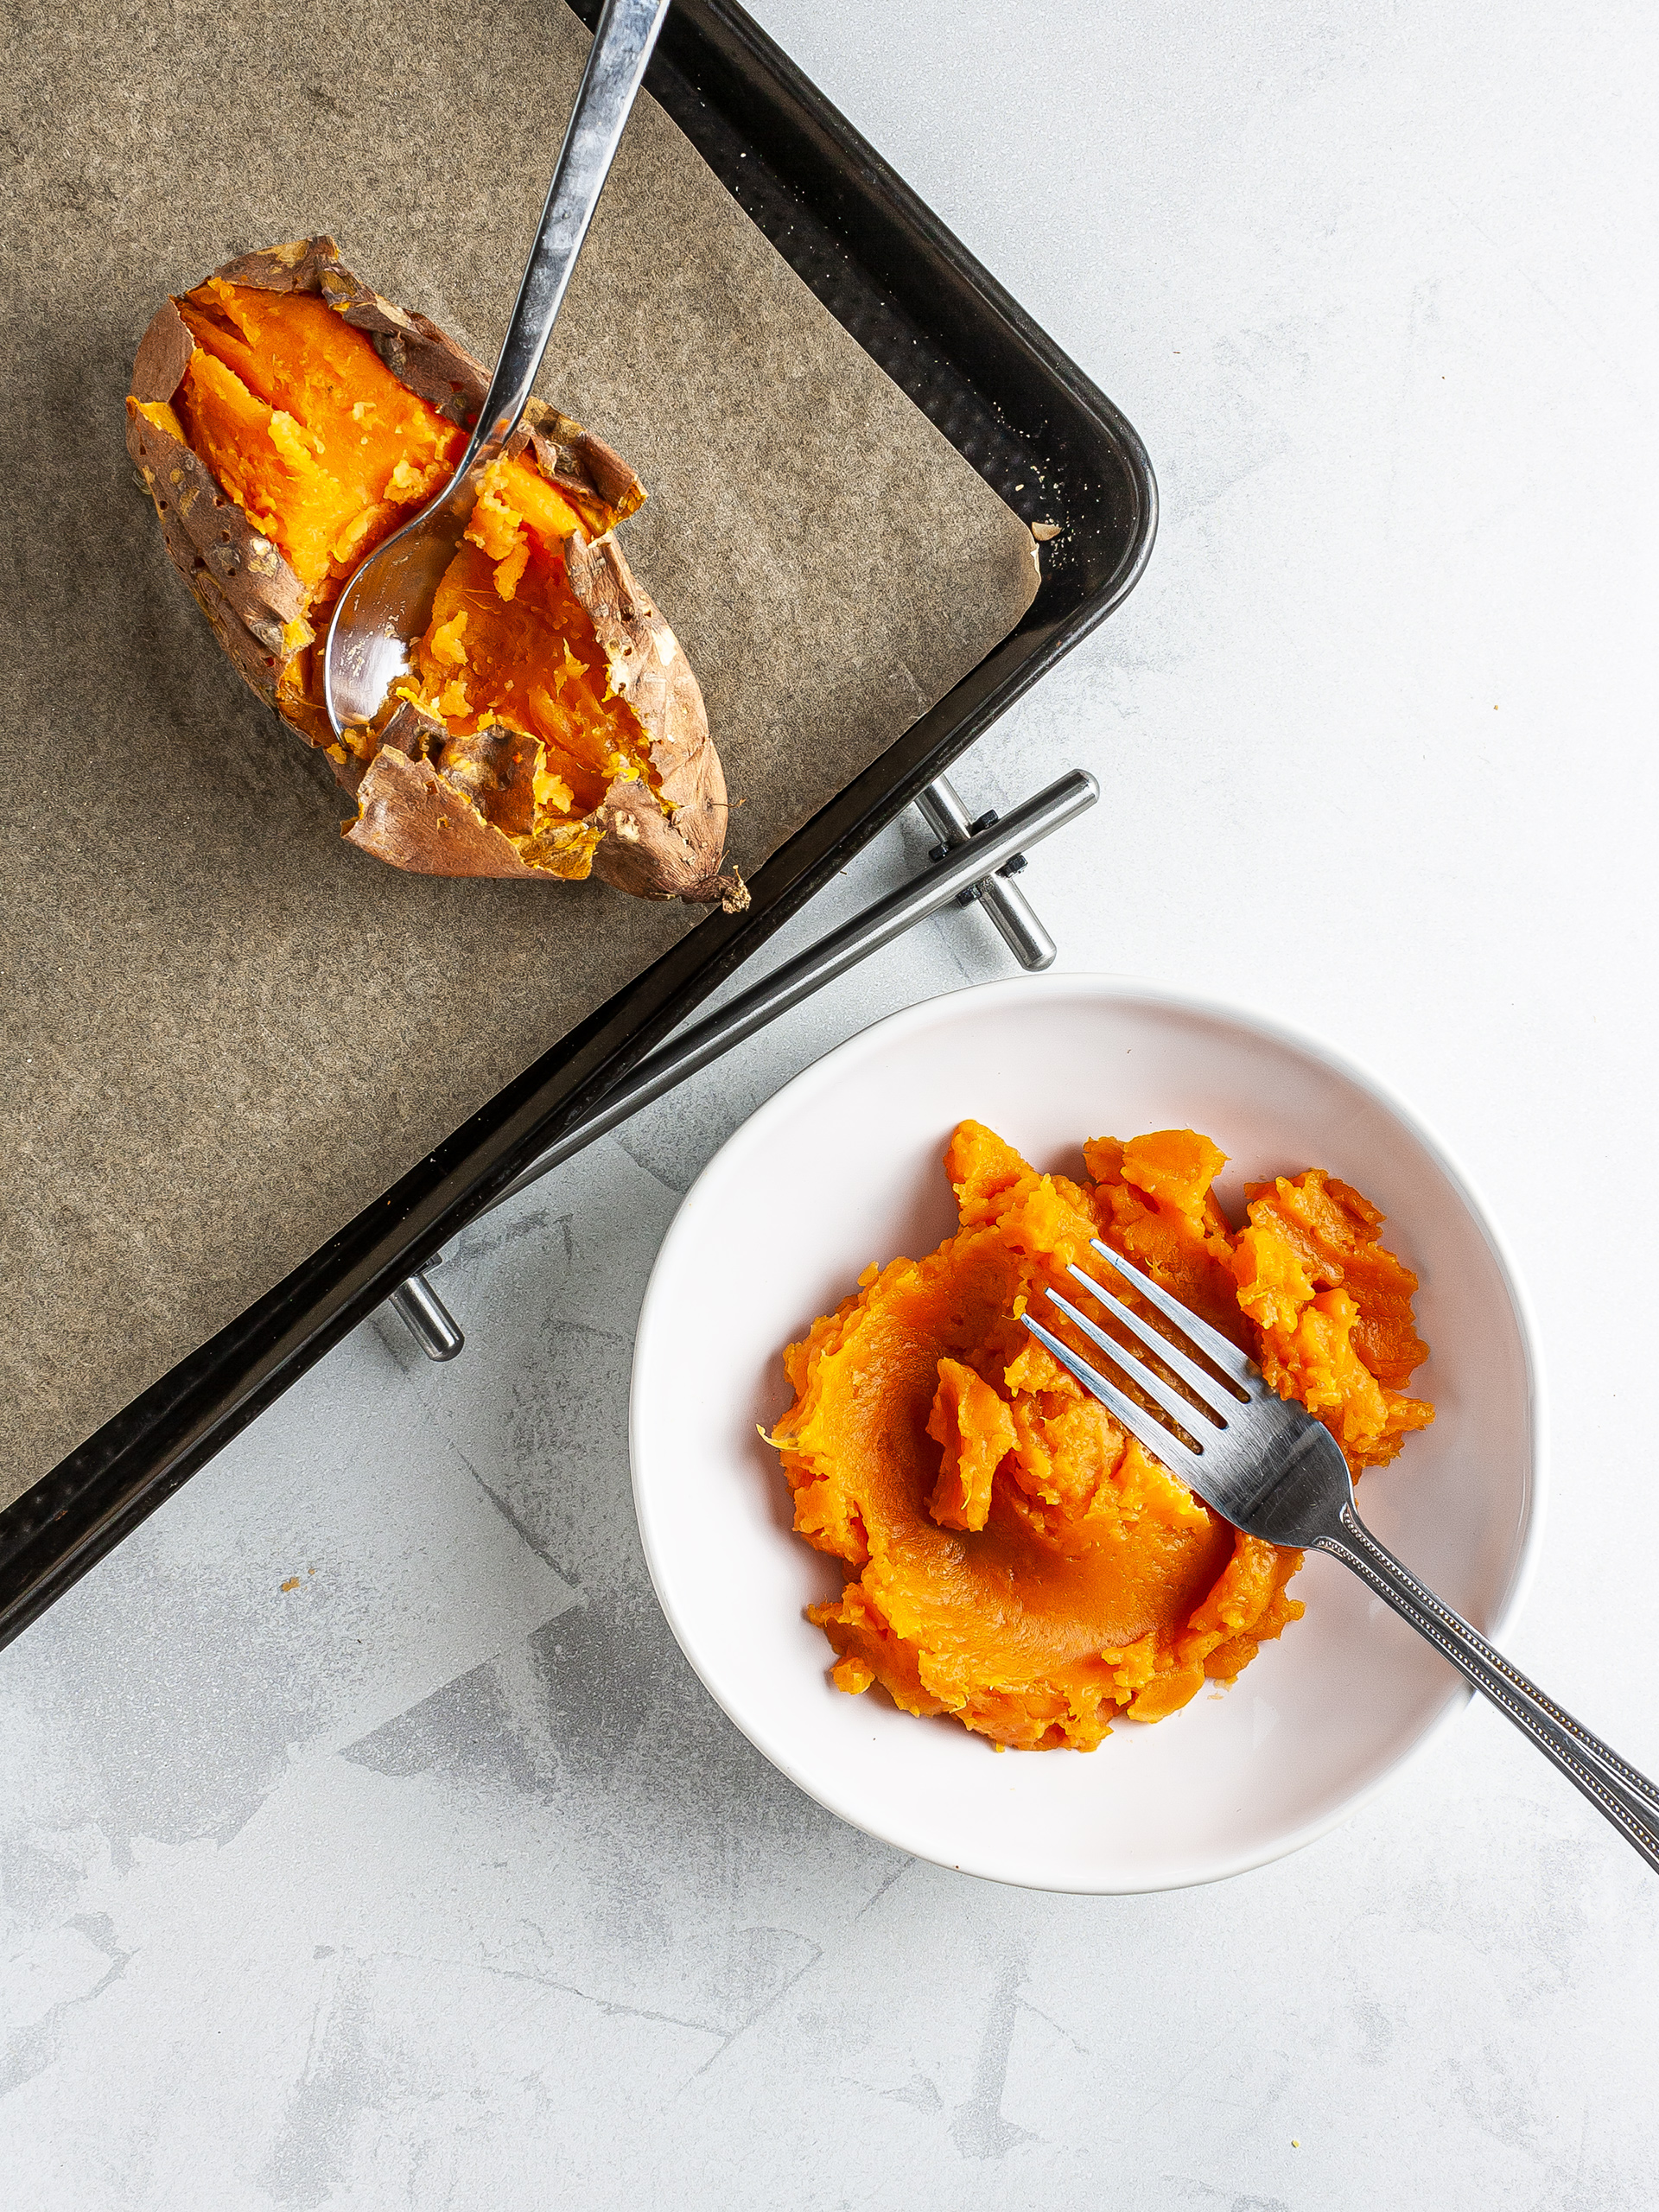 Baked and mashed sweet potatoes